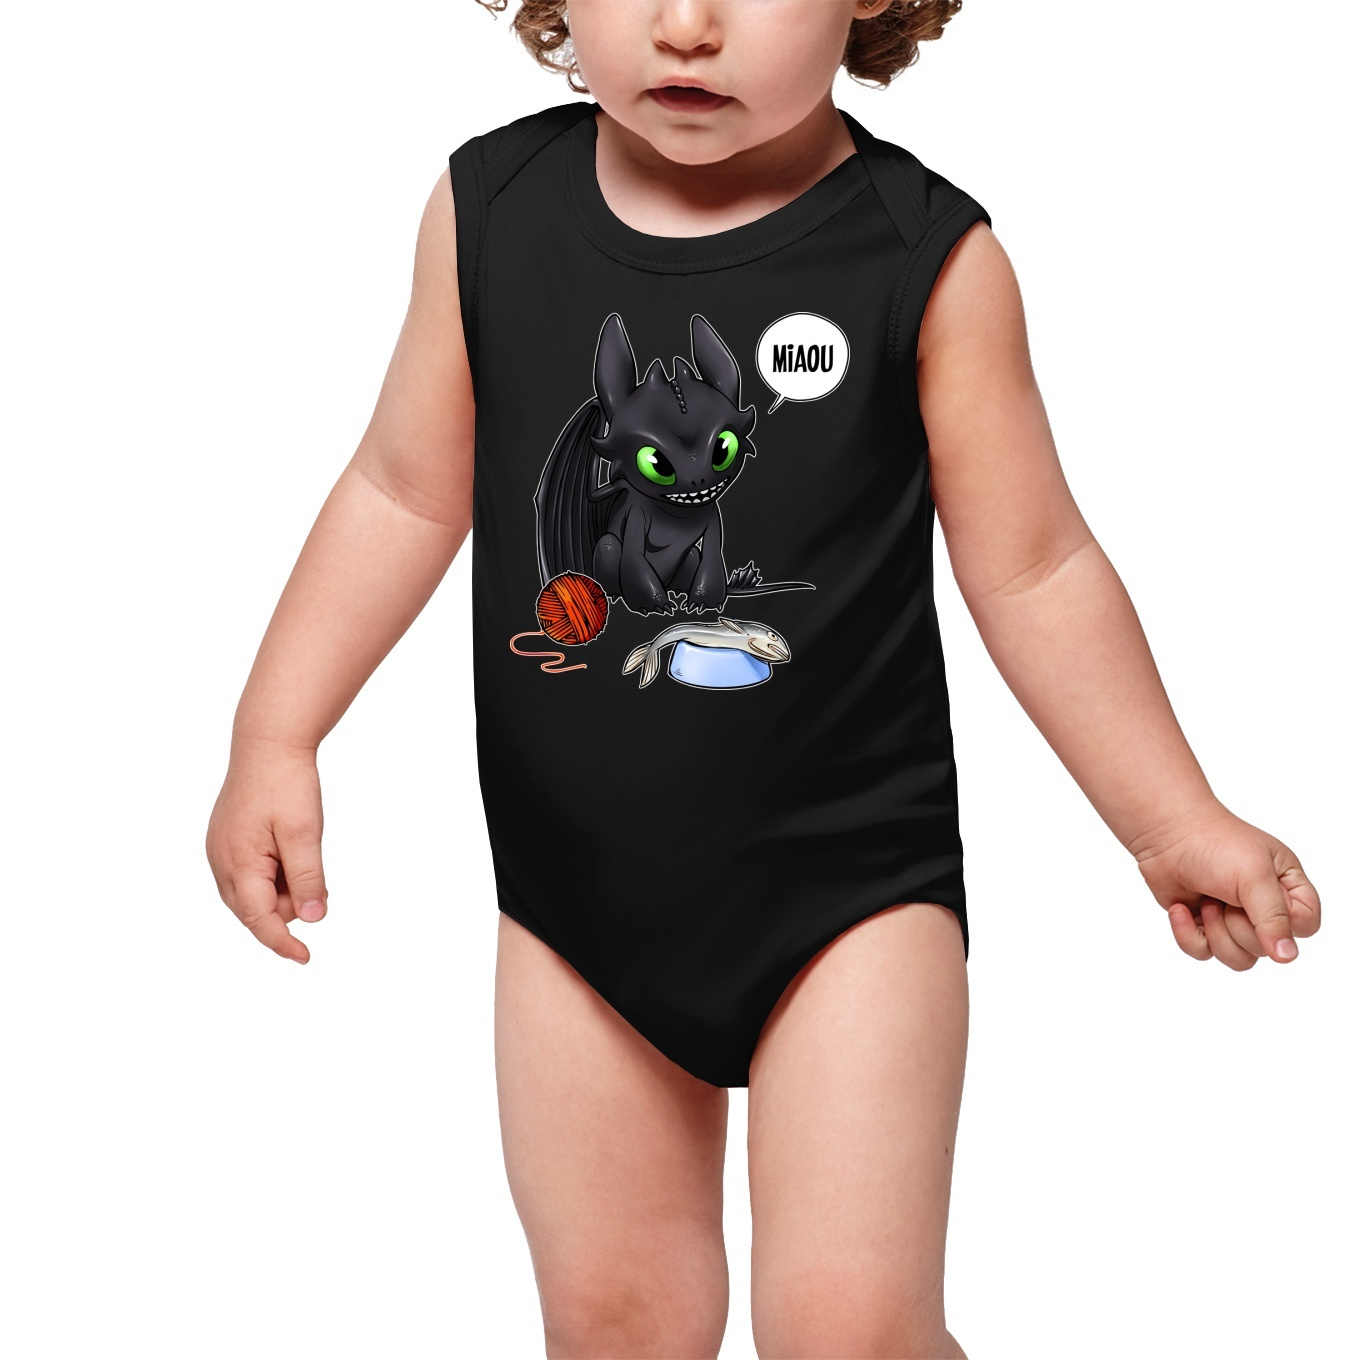 Sleeveless Baby Bodysuits Movies Parodies